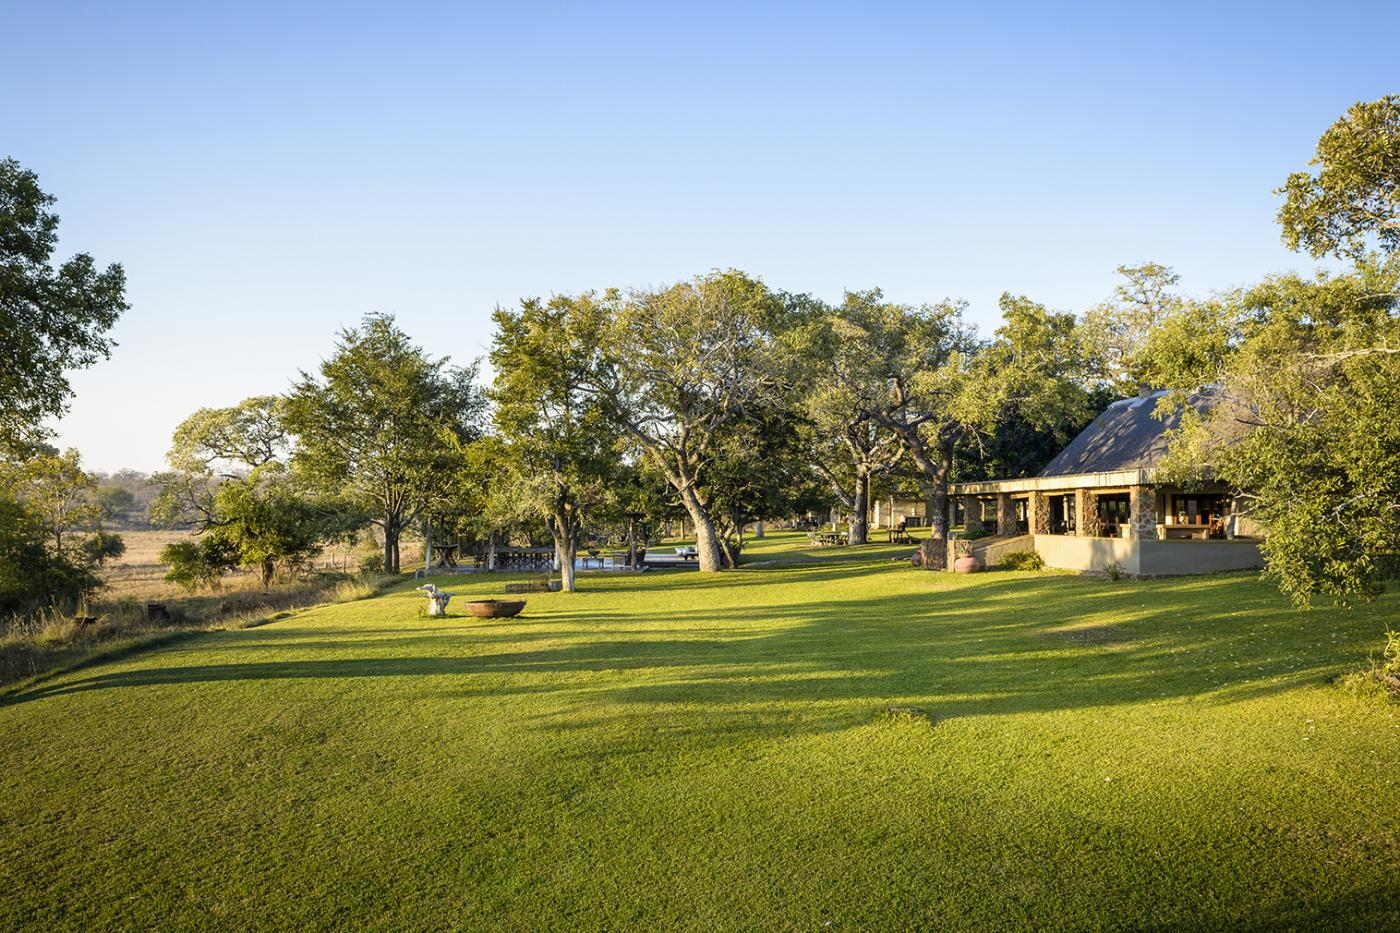 Singita Castleton in South Africa is the perfect place to bring your friends and family.